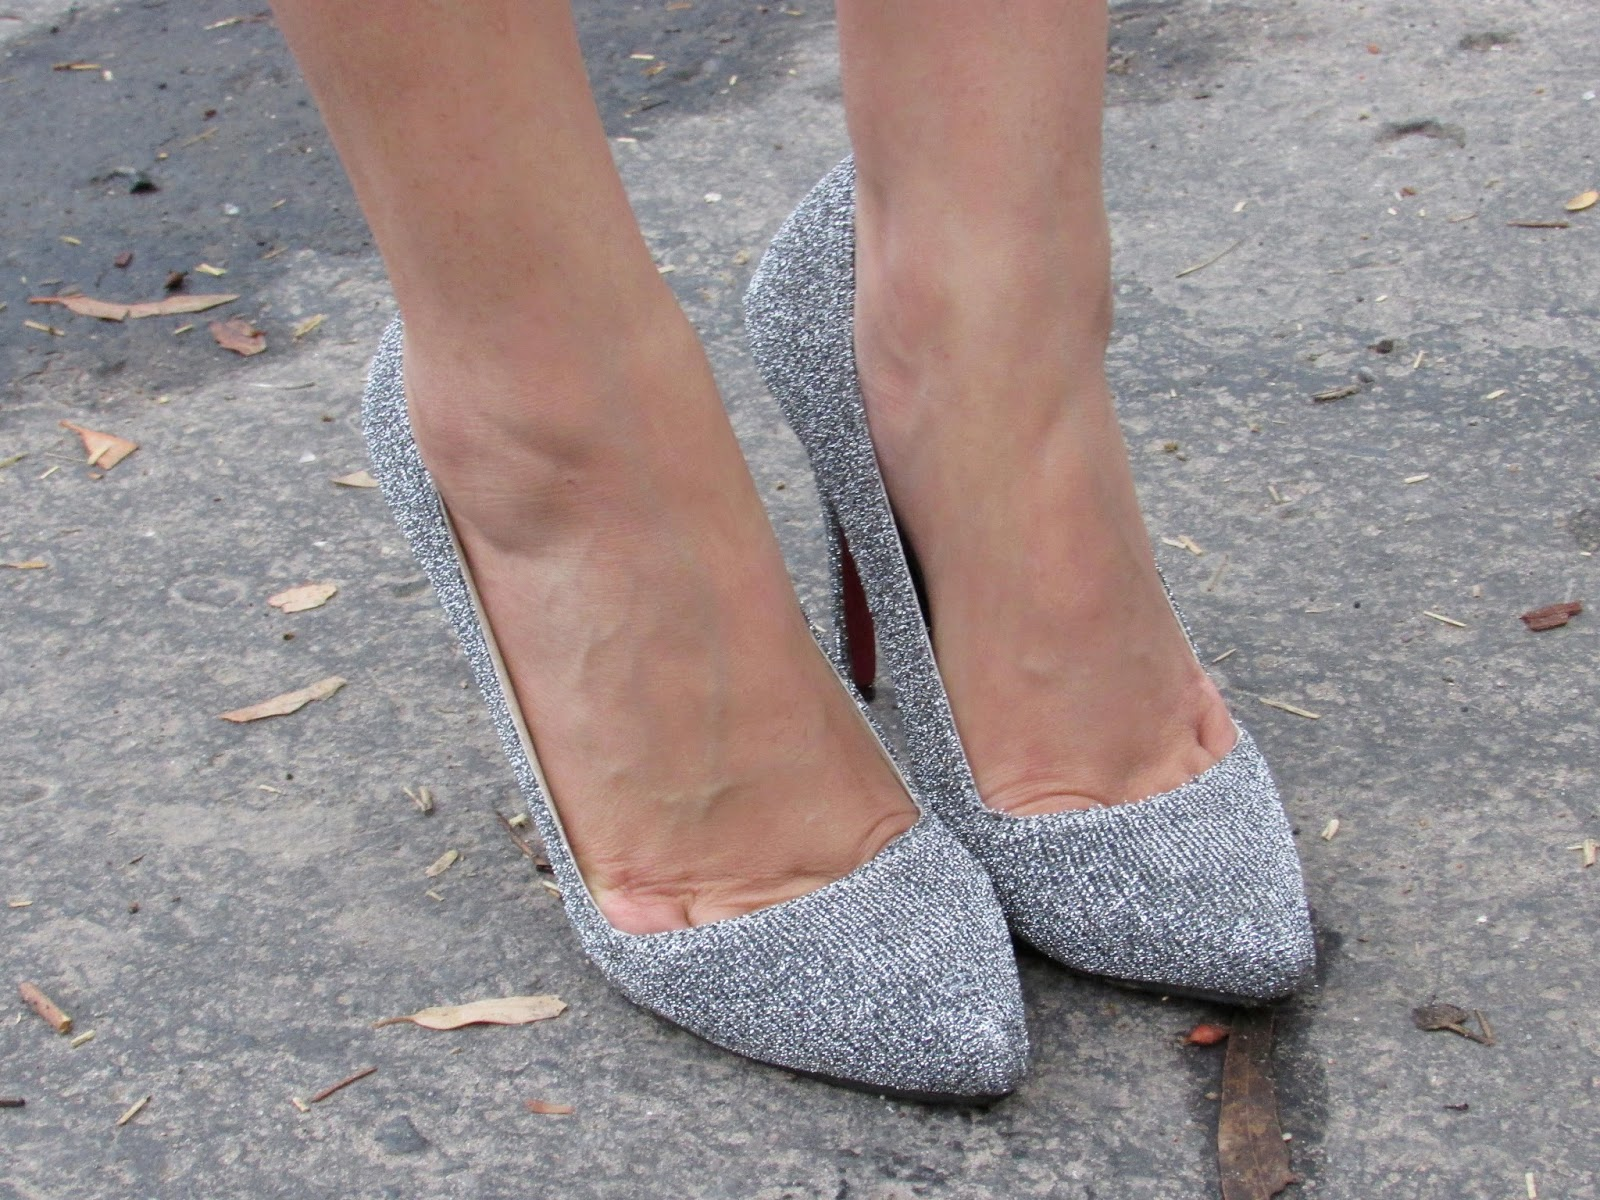 Silver, silver shoes, silver heels, sliver sandals, heels, sandals, glitter shoes, shoe cleavage , foot cleavage , Cinderella, Cinderella shoes, Cinderella heels, Cinderella silver shoes, summer footwear, summer sandals, summer heels, summer trends , white dress, summer dress, floral dress, red lips, boho hairstyle, boho hair bun, boho bun, hair bun, braids, Statement necklace, necklace, statement necklaces, big necklace, heavy necklaces , gold necklace, silver necklace, silver statement necklace, gold statement necklace, studded statement necklace , studded necklace, stone studded necklace, stone necklace, stove studded statement necklace, stone statement necklace, stone studded gold statement necklace, stone studded silver statement necklace, black stone necklace, black stone studded statement necklace, black stone necklace, black stone statement necklace, neon statement necklace, neon stone statement necklace, black and silver necklace, black and gold necklace, blank and silver statement necklace, black and gold statement necklace, silver jewellery, gold jewellery, stove jewellery, stone studded jewellery, imitation jewellery, artificial jewellery, junk jewellery, cheap jewellery ,banggood Statement necklace, banggood necklace, banggood statement necklaces,banggood big necklace, banggood heavy necklaces , banggood gold necklace, banggood silver necklace,  banggood statement necklace,banggood gold statement necklace,banggood studded statement necklace , banggood studded necklace, banggood stone studded necklace, banggood stone necklace, banggood stove studded statement necklace, banggood stone statement necklace, banggood stone studded gold statement necklace, banggood stone studded silver statement necklace, banggood black stone necklace, banggood black stone studded statement necklace, banggood black stone necklace, banggood black stone statement necklace, banggood neon statement necklace, banggood neon stone statement necklace, banggood black and silver necklace, banggood black and gold necklace, banggood black  and silver statement necklace, banggood black and gold statement necklace, silver jewellery, banggood gold jewellery, banggood stove jewellery, banggood stone studded jewellery, banggood imitation jewellery, banggood artificial jewellery, banggood junk jewellery, blackfive cheap jewellery ,Cheap Statement necklace, Cheap necklace, Cheap statement necklaces,Cheap big necklace, Cheap heavy necklaces , Cheap gold necklace, Cheap silver necklace, Cheap silver statement necklace,Cheap gold statement necklace, Cheap studded statement necklace , Cheap studded necklace, Cheap stone studded necklace, Cheap stone necklace, Cheap stove studded statement necklace, Cheap stone statement necklace, Cheap stone studded gold statement necklace, Cheap stone studded silver statement necklace, Cheap black stone necklace, Cheap black stone studded statement necklace, Cheap black stone necklace, Cheap black stone statement necklace, Cheap neon statement necklace, Cheap neon stone statement necklace, Cheap black and silver necklace, Cheap black and gold necklace, Cheap black  and silver statement necklace, Cheap black and gold statement necklace, silver jewellery, Cheap gold jewellery, Cheap stove jewellery, Cheap stone studded jewellery, Cheap imitation jewellery, Cheap artificial jewellery, Cheap junk jewellery, Cheap cheap jewellery , Black pullover, black and grey pullover, black and white pullover, back cutout, back cutout pullover, back cutout sweater, back cutout jacket, back cutout top, back cutout tee, back cutout tee shirt, back cutout shirt, back cutout dress, back cutout trend, back cutout summer dress, back cutout spring dress, back cutout winter dress, High low pullover, High low sweater, High low jacket, High low top, High low tee, High low tee shirt, High low shirt, High low dress, High low trend, High low summer dress, High low spring dress, High low winter dress,banggood Black pullover, banggood black and grey pullover, banggood black and white pullover, banggood back cutout, banggood back cutout pullover, banggood back cutout sweater, banggood back cutout jacket, banggood back cutout top, banggood back cutout tee, shopclues back cutout tee shirt, banggood back cutout shirt, banggood back cutout dress, banggood back cutout trend, banggood back cutout summer dress, banggood back cutout spring dress, banggood back cutout winter dress, banggood High low pullover, banggood High low sweater, banggood High low jacket, ocrun High low top, banggood High low tee, ocrun High low tee shirt, banggood High low shirt, banggood High low dress, banggood High low trend, banggood High low summer dress, banggood High low spring dress, banggood High low winter dress, Cropped, cropped tee,cropped tee shirt , cropped shirt, cropped sweater, cropped pullover, cropped cardigan, cropped top, cropped tank top, Cheap Cropped, cheap cropped tee,cheap cropped tee shirt ,cheap  cropped shirt, cheap cropped sweater, cheap cropped pullover, cheap cropped cardigan,cheap  cropped top, cheap cropped tank top,banggood Cropped, banggood cropped tee, banggood cropped tee shirt , banggood cropped shirt, banggood cropped sweater, banggood cropped pullover, banggood cropped cardigan, banggood cropped top, banggood cropped  top, Winter Cropped, winter cropped tee, winter cropped tee shirt , winter cropped shirt, winter cropped sweater, winter cropped pullover, winter cropped cardigan, winter cropped top, winter cropped tank top,Leggings, winter leggings, warm leggings, winter warm leggings, fall leggings, fall warm leggings, tights, warm tights, winter tights, winter warm tights, fall tights, fall warm tights,banggood leggings, banggood tights, warm warm leggings, banggood warm tights, banggood winter warm tights, banggood fall warm tights, woollen tights , woollen leggings, shopclues woollen tights, banggood woollen leggings, woollen bottoms, banggood woollen bottoms, banggood woollen pants , woollen pants,  Christmas , Christmas leggings, Christmas tights, shopclues Christmas, shopclues Christmas clothes, clothes for Christmas , shopclues Christmas leggings, shopclues Christmas tights, shopclues warm Christmas leggings, shopclues warm Christmas  tights, shopclues snowflake leggings, snowflake leggings, snowflake tights, shopclues rain deer tights, shopclues rain deer leggings, ugly Christmas sweater, Christmas tree, Christmas clothes, Santa clause,Wishlist, clothes wishlist, banggood wishlist, banggood, banggood.net, banggood wishlist, autumn wishlist,banggood ocrun wishlist, banggood.comautumn clothes wishlist, autumn shoes wishlist, autumn bags wishlist, autumn boots wishlist, autumn pullovers wishlist, autumn cardigans wishlist, autymn coats wishlist, banggood clothes wishlist, banggood bags wishlist, banggood bags wishlist, banggood boots wishlist, banggood pullover wishlist, banggood cardigans wishlist, banggood autum clothes wishlist,winter clothes, wibter clothes wishlist, winter wishlist, wibter pullover wishlist, winter bags wishlist, winter boots wishlist, winter cardigans wishlist, winter leggings wishlist, banggood winter clothes, banggood autumn clothes, banggood winter collection, banggood autumn collection,Cheap clothes online,cheap dresses online, cheap jumpsuites online, cheap leggings online, cheap shoes online, cheap wedges online , cheap skirts online, cheap jewellery online, cheap jackets online, cheap jeans online, cheap maxi online, cheap makeup online, cheap cardigans online, cheap accessories online, cheap coats online,cheap brushes online,cheap tops online, chines clothes online, Chinese clothes,Chinese jewellery ,Chinese jewellery online,Chinese heels online,Chinese electronics online,Chinese garments,Chinese garments online,Chinese products,Chinese products online,Chinese accessories online,Chinese inline clothing shop,Chinese online shop,Chinese online shoes shop,Chinese online jewellery shop,Chinese cheap clothes online,Chinese  clothes shop online, korean online shop,korean garments,korean makeup,korean makeup shop,korean makeup online,korean online clothes,korean online shop,korean clothes shop online,korean dresses online,korean dresses online,cheap Chinese clothes,cheap korean clothes,cheap Chinese makeup,cheap korean makeup,cheap korean shopping ,cheap Chinese shopping,cheap Chinese online shopping,cheap korean online shopping,cheap Chinese shopping website,cheap korean shopping website, cheap online shopping,online shopping,how to shop online ,how to shop clothes online,how to shop shoes online,how to shop jewellery online,how to shop mens clothes online, mens shopping online,boys shopping online,boys jewellery online,mens online shopping,mens online shopping website,best Chinese shopping website, Chinese online shopping website for men,best online shopping website for women,best korean online shopping,best korean online shopping website,korean fashion,korean fashion for women,korean fashion for men,korean fashion for girls,korean fashion for boys,best chinese online shopping,best chinese shopping website,best chinese online shopping website,wholesale chinese shopping website,wholesale shopping website,chinese wholesale shopping online,chinese wholesale shopping, chinese online shopping on wholesale prices, clothes on wholesale prices,cholthes on wholesake prices,clothes online on wholesales prices,online shopping, online clothes shopping, online jewelry shopping,how to shop online, how to shop clothes online, how to shop earrings online, how to shop,skirts online, dresses online,jeans online, shorts online, tops online, blouses online,shop tops online, shop blouses online, shop skirts online, shop dresses online, shop botoms online, shop summer dresses online, shop bracelets online, shop earrings online, shop necklace online, shop rings online, shop highy low skirts online, shop sexy dresses onle, men's clothes online, men's shirts online,men's jeans online, mens.s jackets online, mens sweaters online, mens clothes, winter coats online, sweaters online, cardigens online,beauty , fashion,beauty and fashion,beauty blog, fashion blog , indian beauty blog,indian fashion blog, beauty and fashion blog, indian beauty and fashion blog, indian bloggers, indian beauty bloggers, indian fashion bloggers,indian bloggers online, top 10 indian bloggers, top indian bloggers,top 10 fashion bloggers, indian bloggers on blogspot,home remedies, how to,banggood online shopping,banggood online shopping review,banggood.com review,banggood online clothing store,banggood online chinese store,banggood online shopping,banggood site review,banggood.com site review, banggood Chines fashion, banggood , banggood.com, ocrun clothing, banggood dresses, banggood shoes, banggood accessories,banggood men cloths ,banggood makeup, ocrun helth products,banggood Chinese online shopping, banggood Chinese store, banggood online chinese shopping, banggood lchinese shopping online,banggood, banggood dresses, banggood clothes, banggood garments, banggood clothes, banggood skirts, banggood pants, ocrun tops, banggood cardigans, banggood leggings, banggood fashion , banggood clothes fashion, banggood footwear, banggood fashion footwear, banggood jewellery, ocrun fashion jewellery, banggood rings, ocrun necklace, banggood bracelets, banggood earings,Autumn, fashion, banggood, wishlist,Winter,fall, fall abd winter, winter clothes , fall clothes, fall and winter clothes, fall jacket, winter jacket, fall and winter jacket, fall blazer, winter blazer, fall and winter blazer, fall coat , winter coat, falland winter coat, fall coverup, winter coverup, fall and winter coverup, outerwear, coat , jacket, blazer, fall outerwear, winter outerwear, fall and winter outerwear, woolen clothes, wollen coat, woolen blazer, woolen jacket, woolen outerwear, warm outerwear, warm jacket, warm coat, warm blazer, warm sweater, coat , white coat, white blazer, white coat, white woolen blazer, white coverup, white woolens, banggood online shopping review,banggood.com review,banggood online clothing store,banggood online chinese store,banggood online shopping,banggood site review, banggood.com site review, banggood Chines fashion, banggood , banggood.com, banggood clothing, ocrun dresses, banggood shoes, banggood accessories,banggood men cloths ,banggood makeup, ocrun helth products,banggood Chinese online shopping, banggood Chinese store, banggood online chinese shopping, banggood chinese shopping online,banggood, ocrun dresses, banggood clothes, ocrun garments, banggood clothes, blackfive skirts, banggood pants, banggood tops, banggood cardigans, banggood leggings, banggood fashion , banggood clothes fashion, banggood footwear, banggood fashion footwear, banggood jewellery, banggood fashion jewellery, banggood rings, banggood necklace, ocrun bracelets, banggood earings,latest fashion trends online, online shopping, online shopping in india, online shopping in india from america, best online shopping store , best fashion clothing store, best online fashion clothing store, best online jewellery store, best online footwear store, best online store, beat online store for clothes, best online store for footwear, best online store for jewellery, best online store for dresses, worldwide shipping free, free shipping worldwide, online store with free shipping worldwide,best online store with worldwide shipping free,low shipping cost, low shipping cost for shipping to india, low shipping cost for shipping to asia, low shipping cost for shipping to korea,Friendship day , friendship's day, happy friendship's day, friendship day outfit, friendship's day outfit, how to wear floral shorts, floral shorts, styling floral shorts, how to style floral shorts, how to wear shorts, how to style shorts, how to style style denim shorts, how to wear denim shorts,how to wear printed shorts, how to style printed shorts, printed shorts, denim shorts, how to style black shorts, how to wear black shorts, how to wear black shorts with black T-shirts, how to wear black T-shirt, how to style a black T-shirt, how to wear a plain black T-shirt, how to style black T-shirt,how to wear shorts and T-shirt, what to wear with floral shorts, what to wear with black floral shorts,how to wear all black outfit, what to wear on friendship day, what to wear on a date, what to wear on a lunch date, what to wear on lunch, what to wear to a friends house, what to wear on a friends get together, what to wear on friends coffee date , what to wear for coffee,beauty,Pink, pink pullover, pink sweater, pink jumpsuit, pink sweatshirt, neon pink, neon pink sweater, neon pink pullover, neon pink jumpsuit , neon pink cardigan, cardigan , pink cardigan, sweater, jumper, jumpsuit, pink jumper, neon pink jumper, pink jacket, neon pink jacket, winter clothes, oversized coat, oversized winter clothes, oversized pink coat, oversized coat, oversized jacket, banggood pink, banggood pink sweater, banggood pink jacket, banggood pink cardigan, banggood pink coat, banggood pink jumper, banggood neon pink, banggood neon pink jacket, banggood neon pink coat, banggood neon pink sweater, banggood neon pink jumper, banggood neon pink pullover, pink pullover, neon pink pullover,fur,furcoat,furjacket,furblazer,fur pullover,fur cardigan,front open fur coat,front open fur jacket,front open fur blazer,front open fur pullover,front open fur cardigan,real fur, real fur coat,real fur jacket,real fur blazer,real fur pullover,real fur cardigan, soft fur,soft fur coat,soft fur jacket,soft furblazer,soft fur pullover,sof fur cardigan, white fur,white fur coat,white fur jacket,white fur blazer, white fur pullover, white fur cardigan,trench, trench coat, trench coat online, trench coat india, trench coat online India, trench cost price, trench coat price online, trench coat online price, cheap trench coat, cheap trench coat online, cheap trench coat india, cheap trench coat online India, cheap trench coat , Chinese trench coat, Chinese coat, cheap Chinese trench coat, Korean coat, Korean trench coat, British coat, British trench coat, British trench coat online, British trench coat online, New York trench coat, New York trench coat online, cheap new your trench coat, American trench coat, American trench coat online, cheap American trench coat, low price trench coat, low price trench coat online , low price trench coat online india, low price trench coat india, banggood trench, banggood trench coat, banggood trench coat online, banggood trench coat india, banggood trench coat online India, banggood trench cost price,banggood trench coat price online, banggood trench coat online price, banggood cheap trench coat,  banggood trench coat online, banggood cheap trench coat india, banggood cheap trench coat online India, banggood cheap trench coat , banggood Chinese trench coat, ocrun Chinese coat, banggood cheap Chinese trench coat, banggood Korean coat, ocrun Korean trench coat, banggood British coat, banggood British trench coat, banggood British trench coat online, banggood British trench coat online, banggood New York trench coat, banggood New York trench coat online, banggood cheap new your trench coat, banggood American trench coat, banggood American trench coat online, banggood cheap American trench coat, banggood low price trench coat, banggood low price trench coat online , banggood low price trench coat online india, banggood low price trench coat india, how to wear trench coat, how to wear trench, how to style trench coat, how to style coats, how to style long coats, how to style winter coats, how to style winter trench coats, how to style winter long coats, how to style warm coats, how to style beige coat, how to style beige long coat, how to style beige trench coat, how to style beige coat, beige coat, beige long coat, beige long coat, beige frock coat, beige double breasted coat, double breasted coat, how to style frock coat, how to style double breasted coat, how to wear beige trench coat,how to wear beige coat, how to wear beige long coat, how to wear beige frock coat, how to wear beige double button coat, how to wear beige double breat coat, double button coat, what us trench coat, uses of trench coat, what is frock coat, uses of frock coat, what is long coat, uses of long coat, what is double breat coat, uses of double breasted coat, what is bouton up coat, uses of button up coat, what is double button coat, uses of double button coat, velvet leggings, velvet tights, velvet bottoms, embroided velvet leggings, embroided velvet tights, pattern tights, velvet pattern tights, floral tights , floral velvet tights, velvet floral tights, embroided  velvet leggings, pattern leggings , velvet pattern leggings , floral leggings , floral velvet leggings, velvet floral leggings ,eyeboxs velvet leggings, banggood velvet tights, banggood velvet bottoms,banggood embroided velvet leggings,banggood embroided velvet tights, banggood pattern tights, banggood velvet pattern tights, banggood floral tights , banggood floral velvet tights, banggood velvet floral tights, banggood embroided  velvet leggings, banggood pattern leggings , banggood velvet pattern leggings , banggood floral leggings ,banggood floral velvet leggings, banggood velvet floral leggings ,banggood studded heels, studded heels , stud heels, valentinos , valentino heels, valentine shoes, valentino studded shoes, valentino studded heels, valentino studded sandels, black valentino, valentino footwear ,shoe sale , valentino look alikes, cartoon tee , cartoon , cartoon print , cartoon pattern , cartoon shirt , cartoon top , cartoon print top , cartoon print shirt, cartoon paint shorts , cartoon print tee